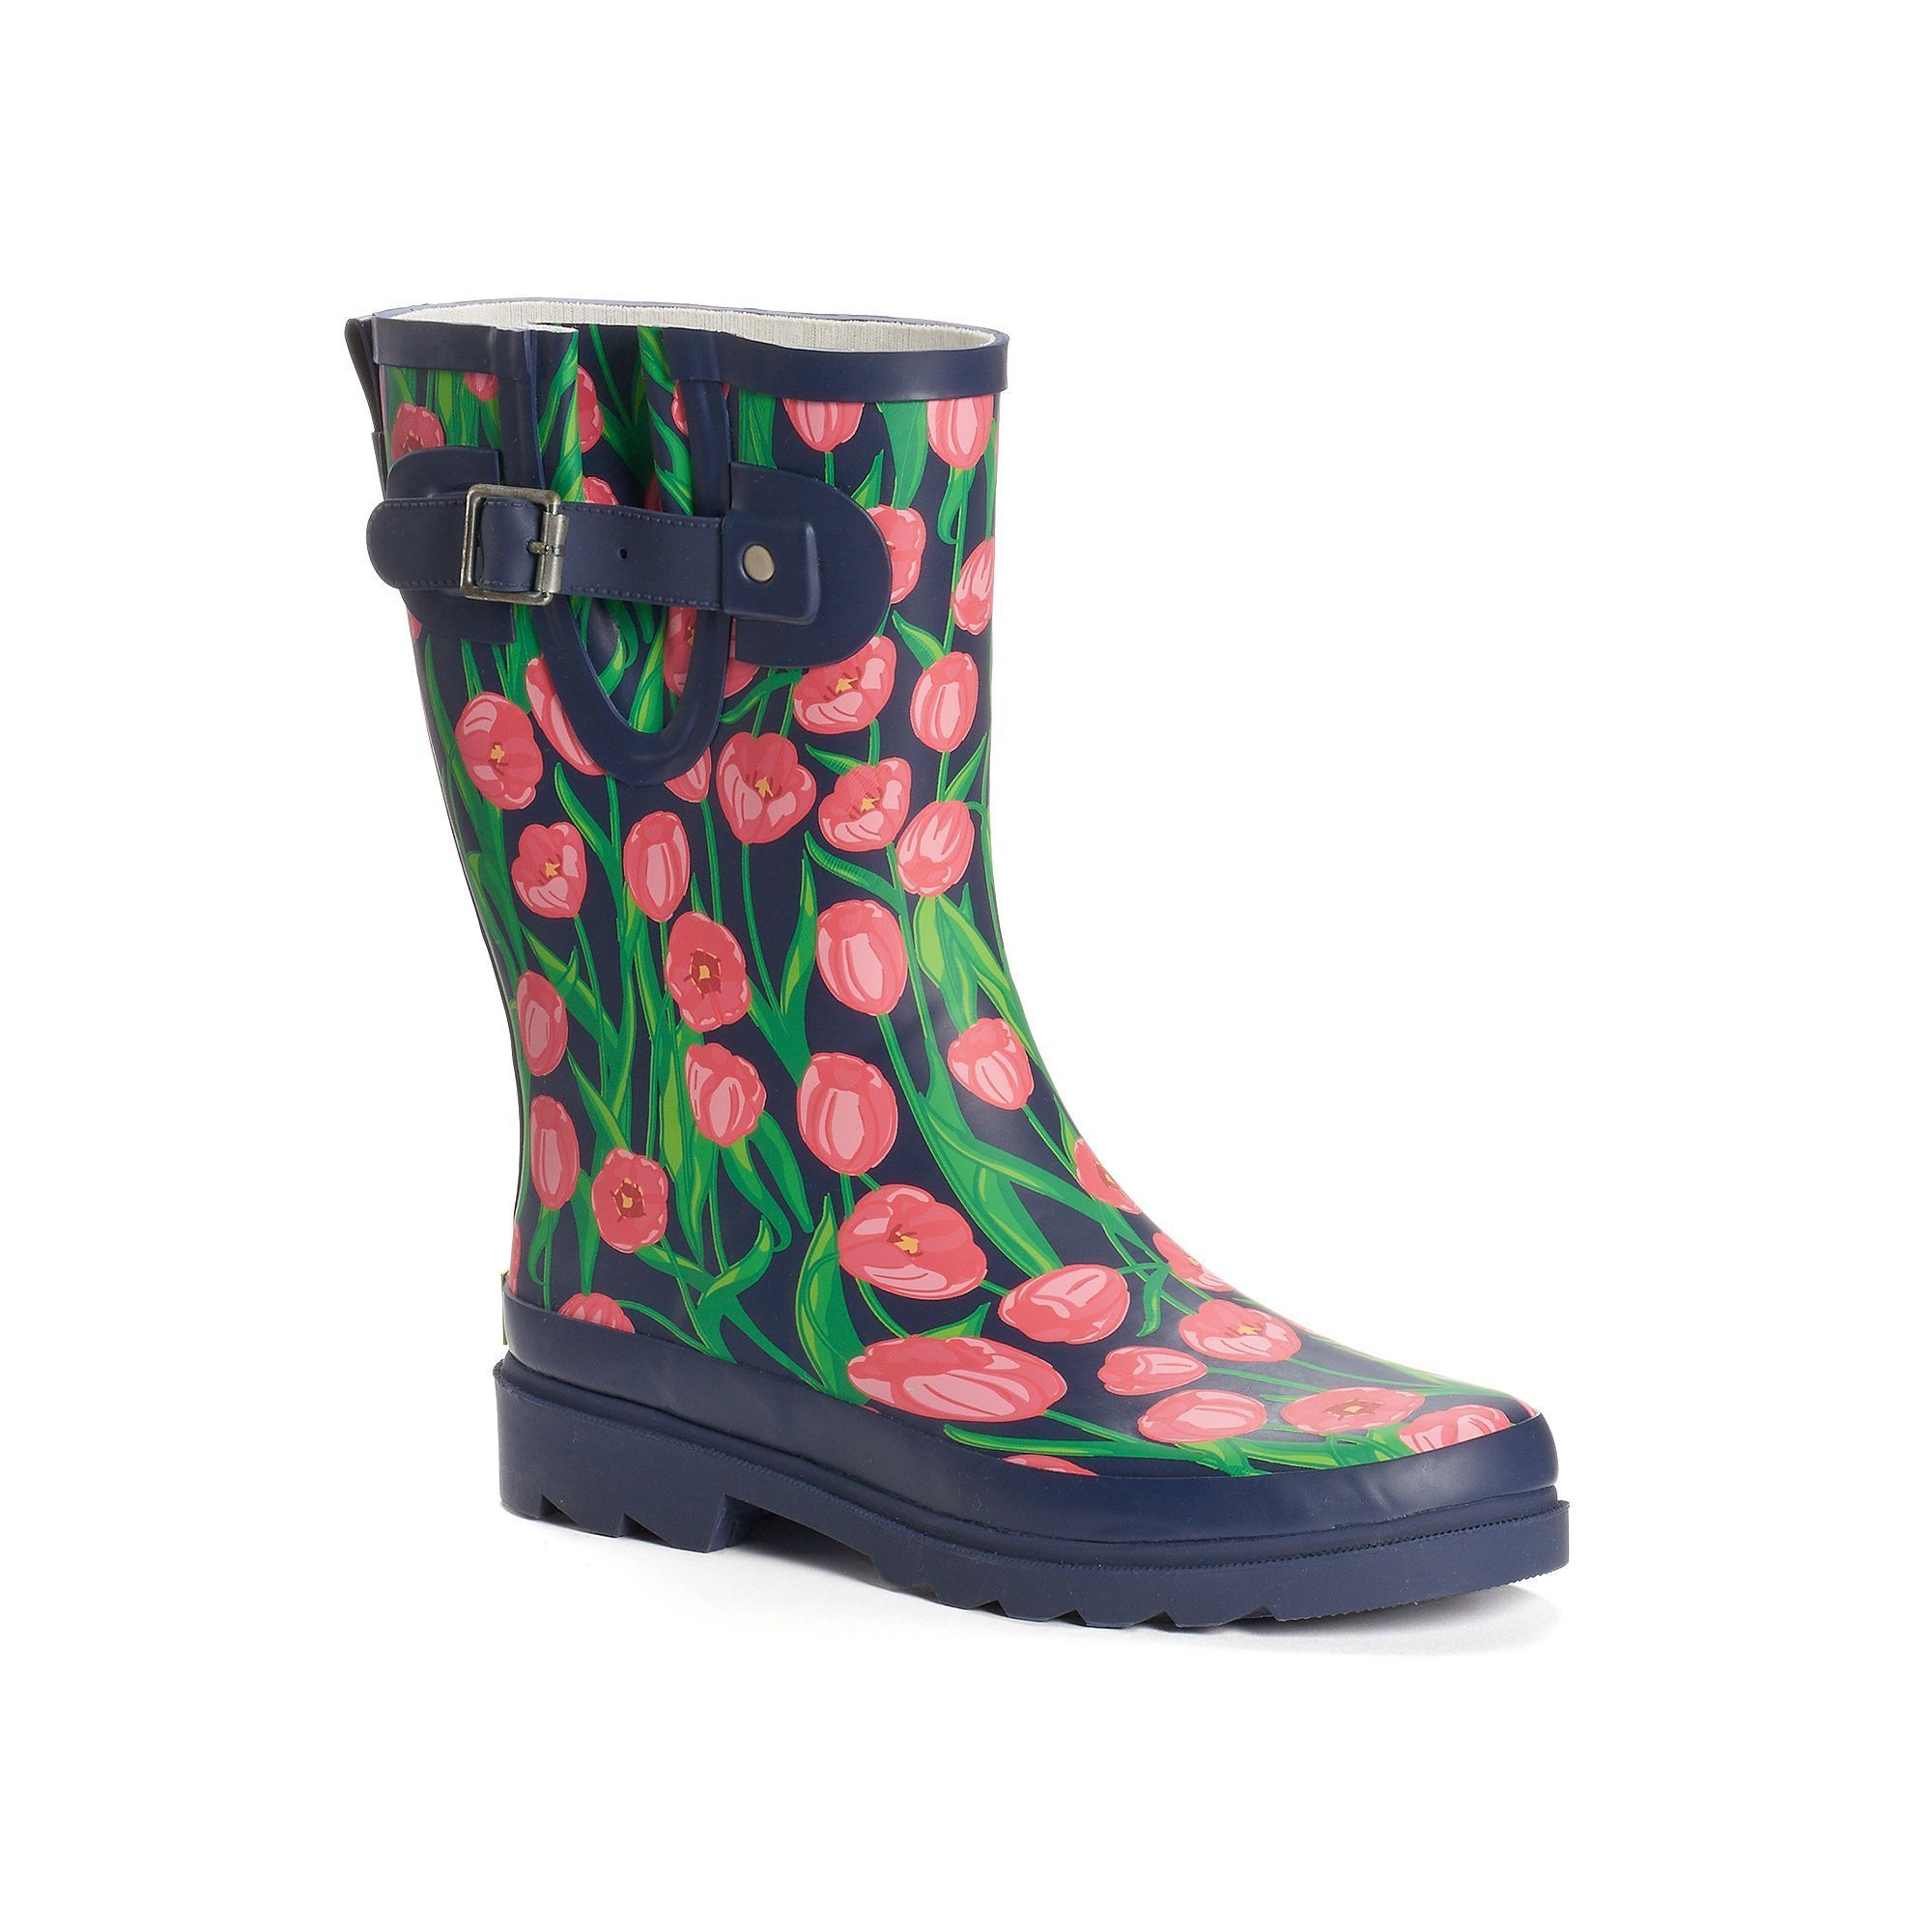 Western Chief Women's Graphic Print Water-Resistant Rain Boots, Size: 6, Med Blue